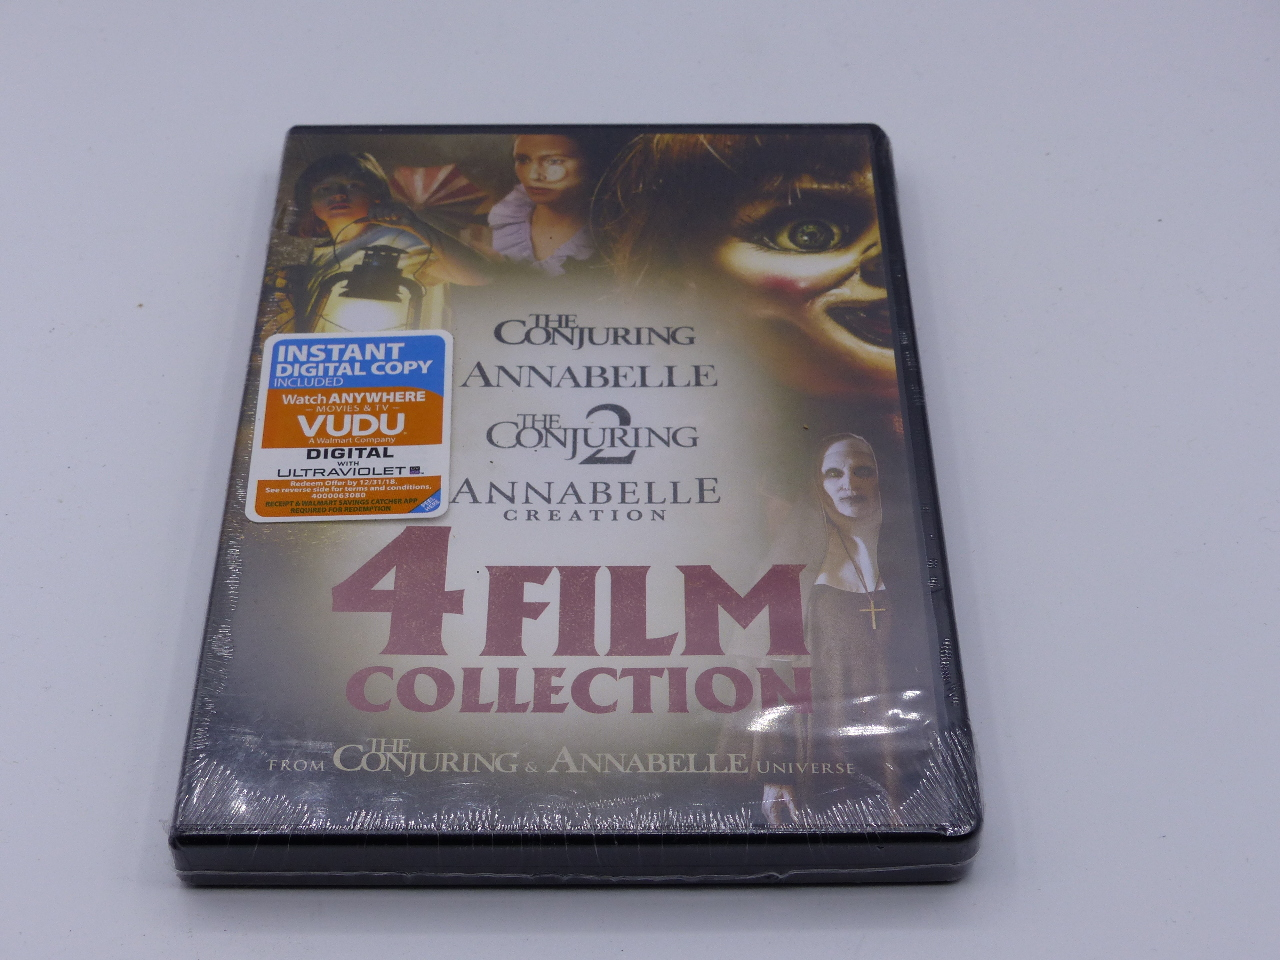 4 FILM COLLECTION FROM THE CONJURING AND ANNABELLE UNIVERSE DVD NEW